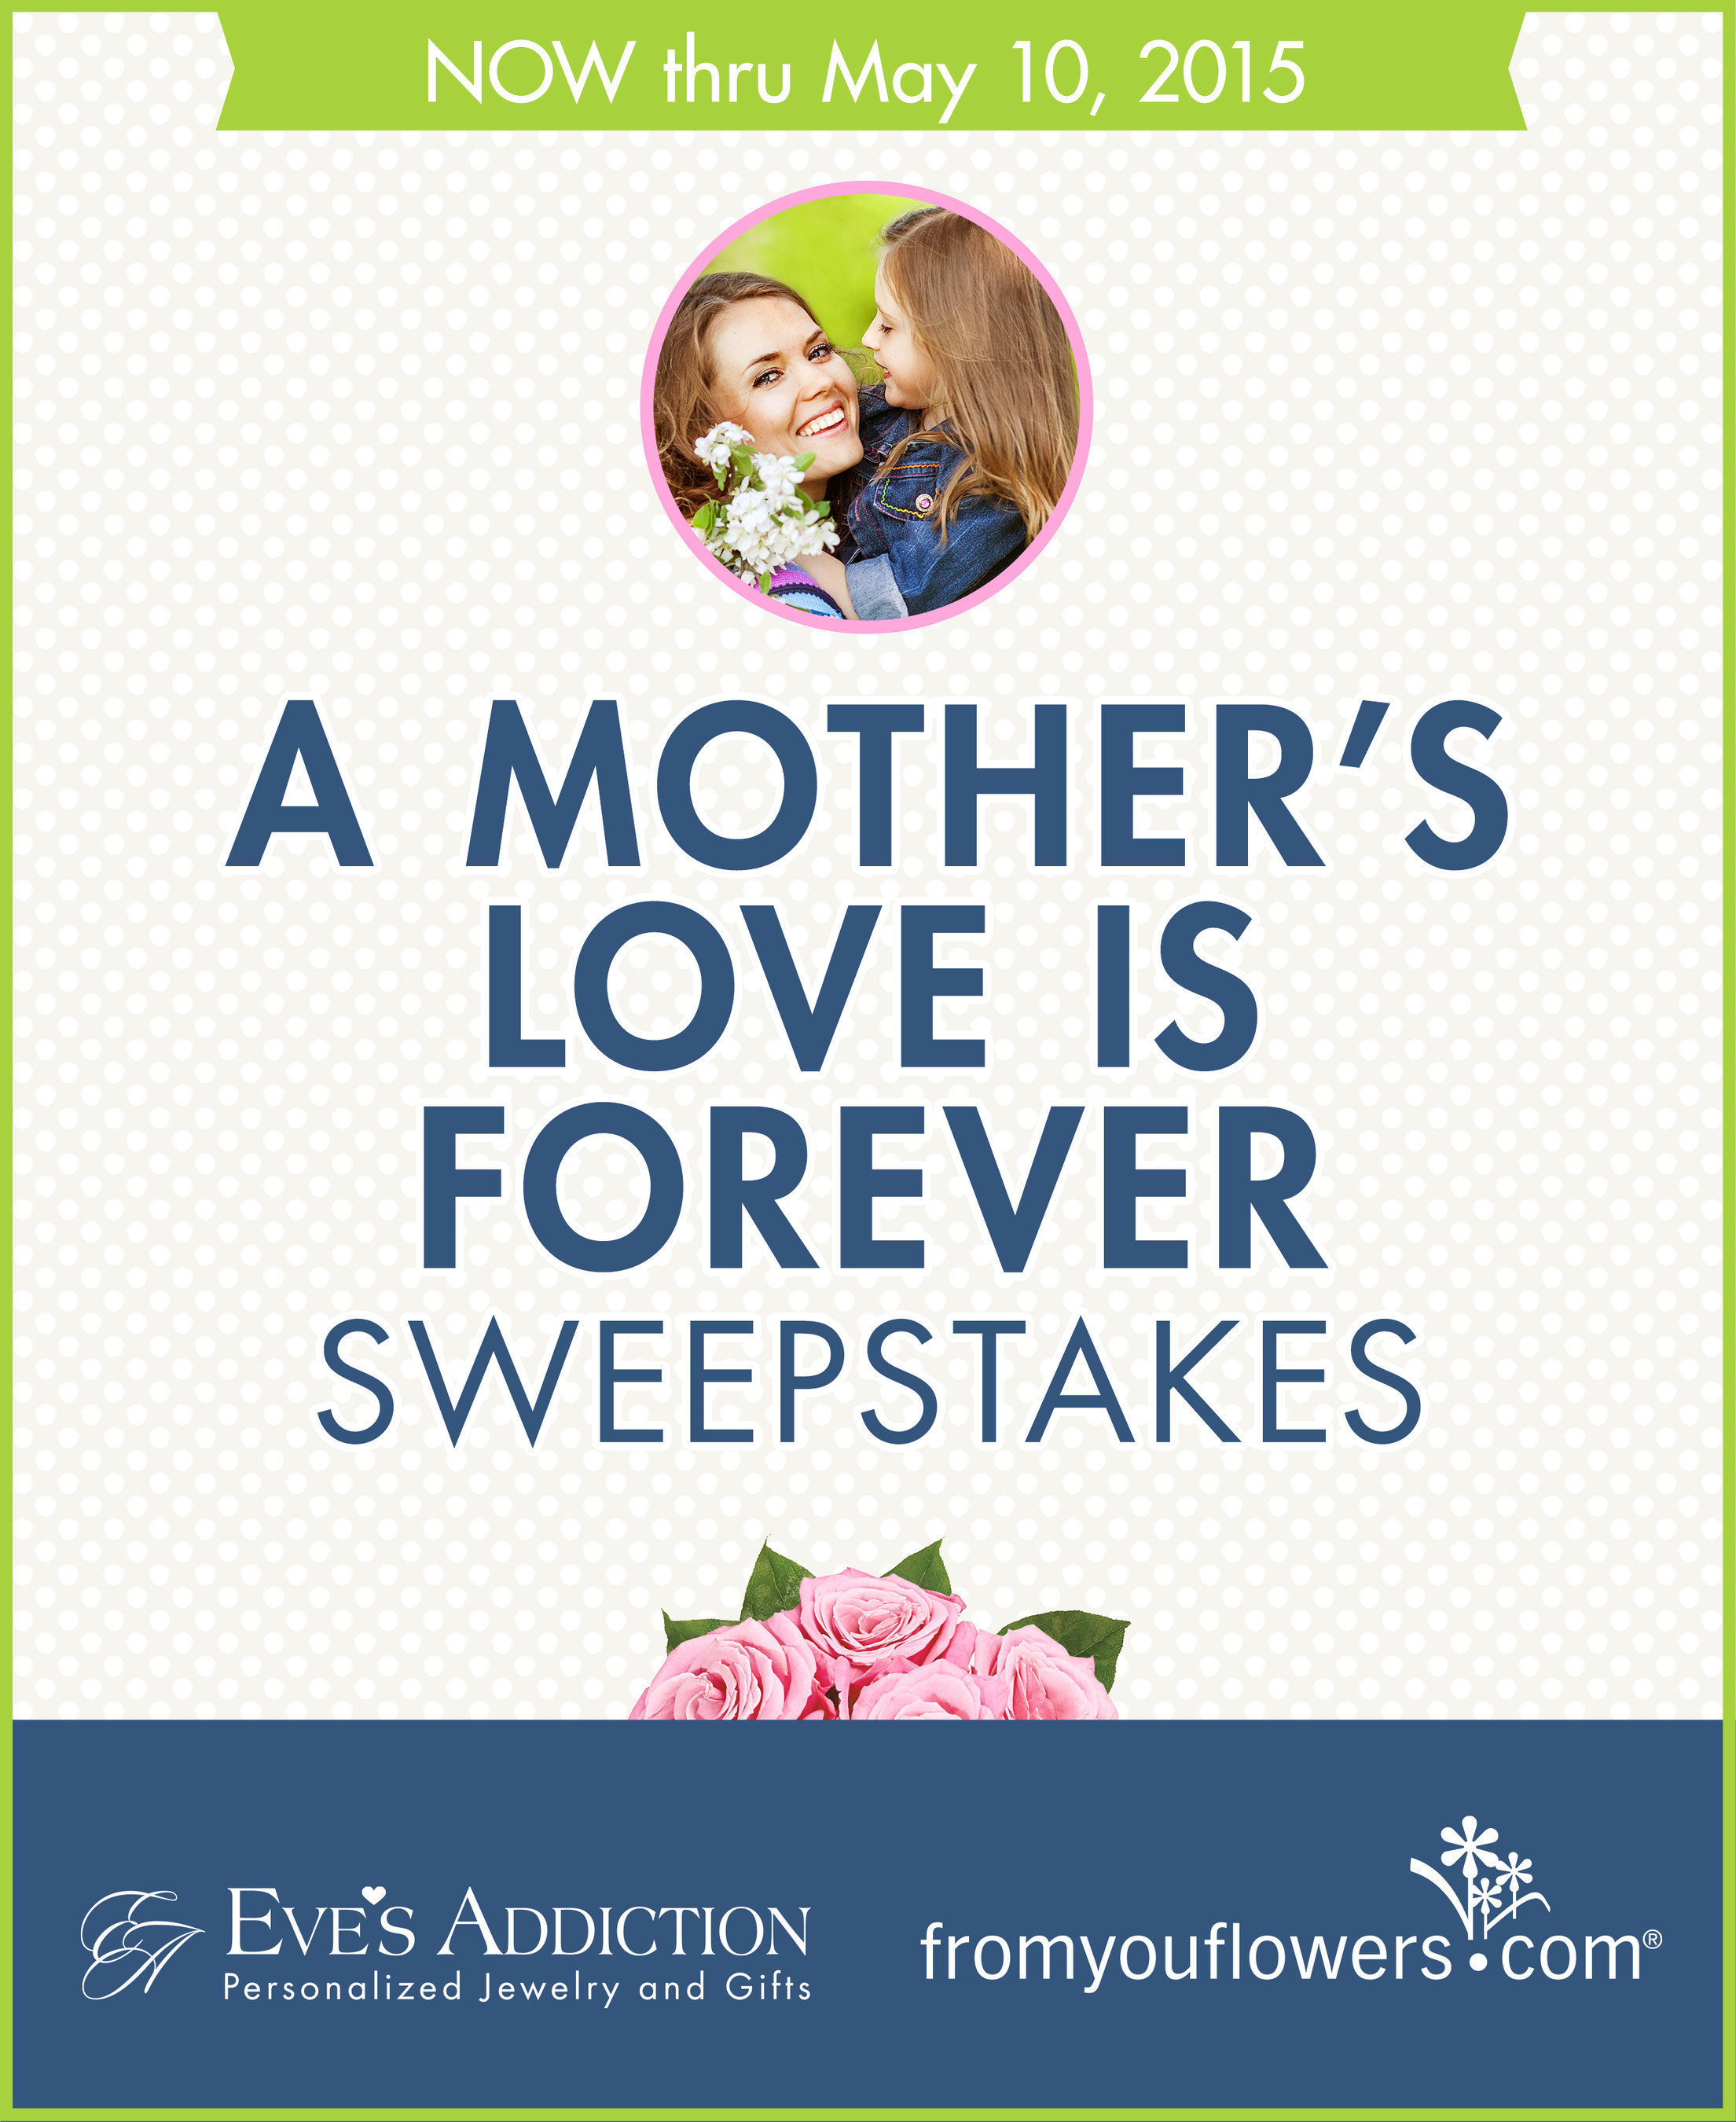 Get 2 Chances to Win Flowers, Jewelry, Gift Cards, & More in A Mother's Love Is Forever Sweepstakes, Hosted by From You Flowers and Eve's Addiction!